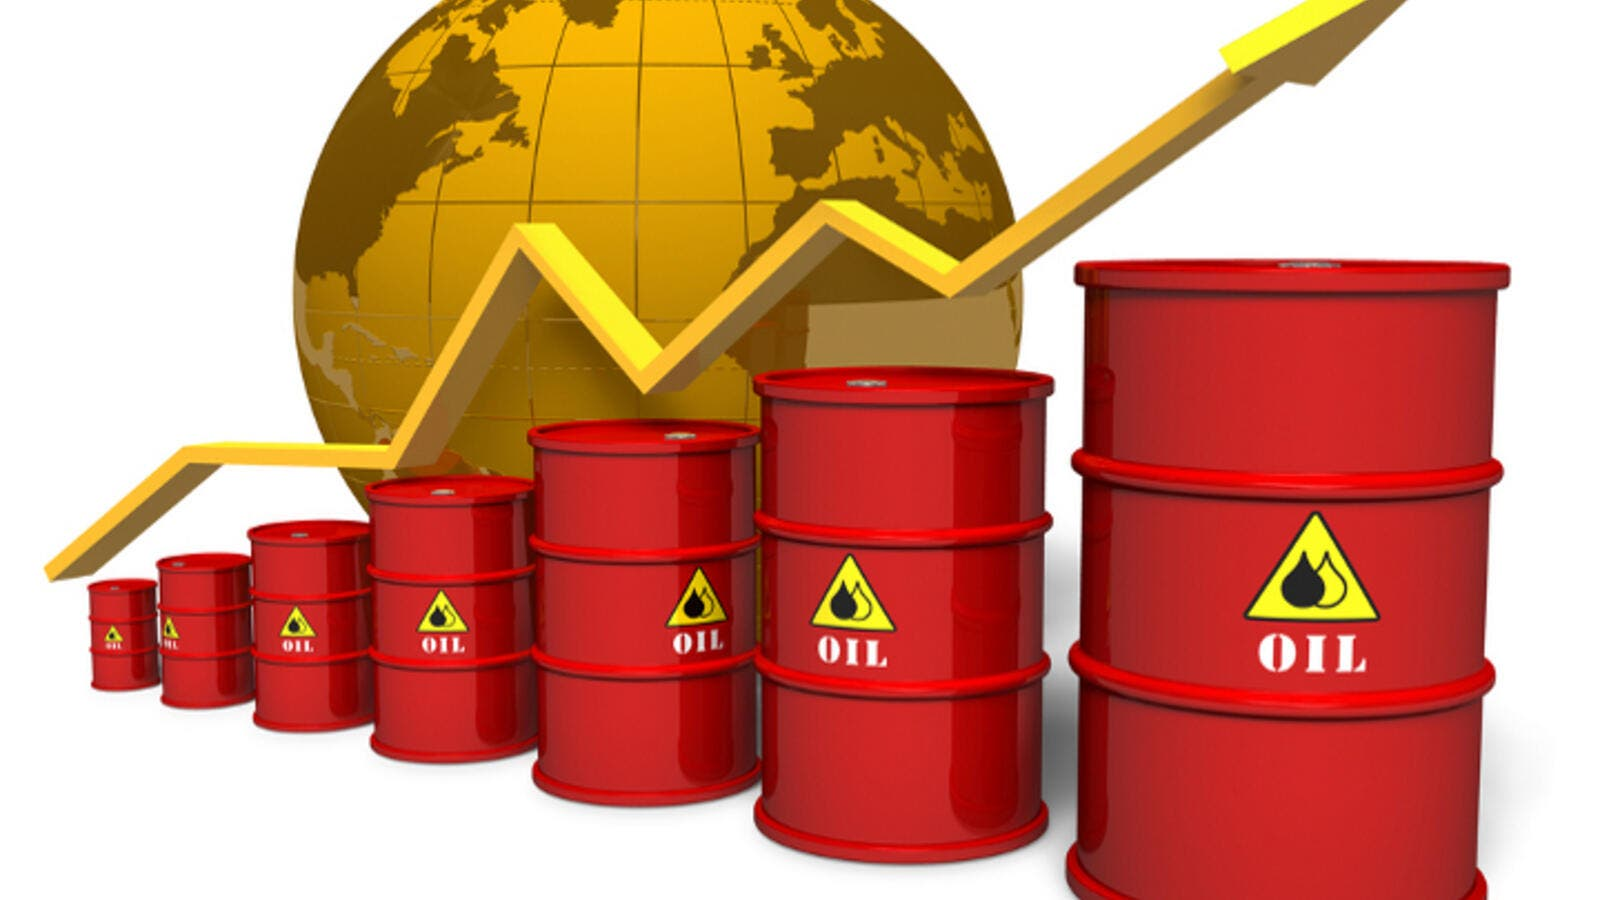 Increase in global supply will result in a drop in oil prices. (Image credit: Shutterstock)